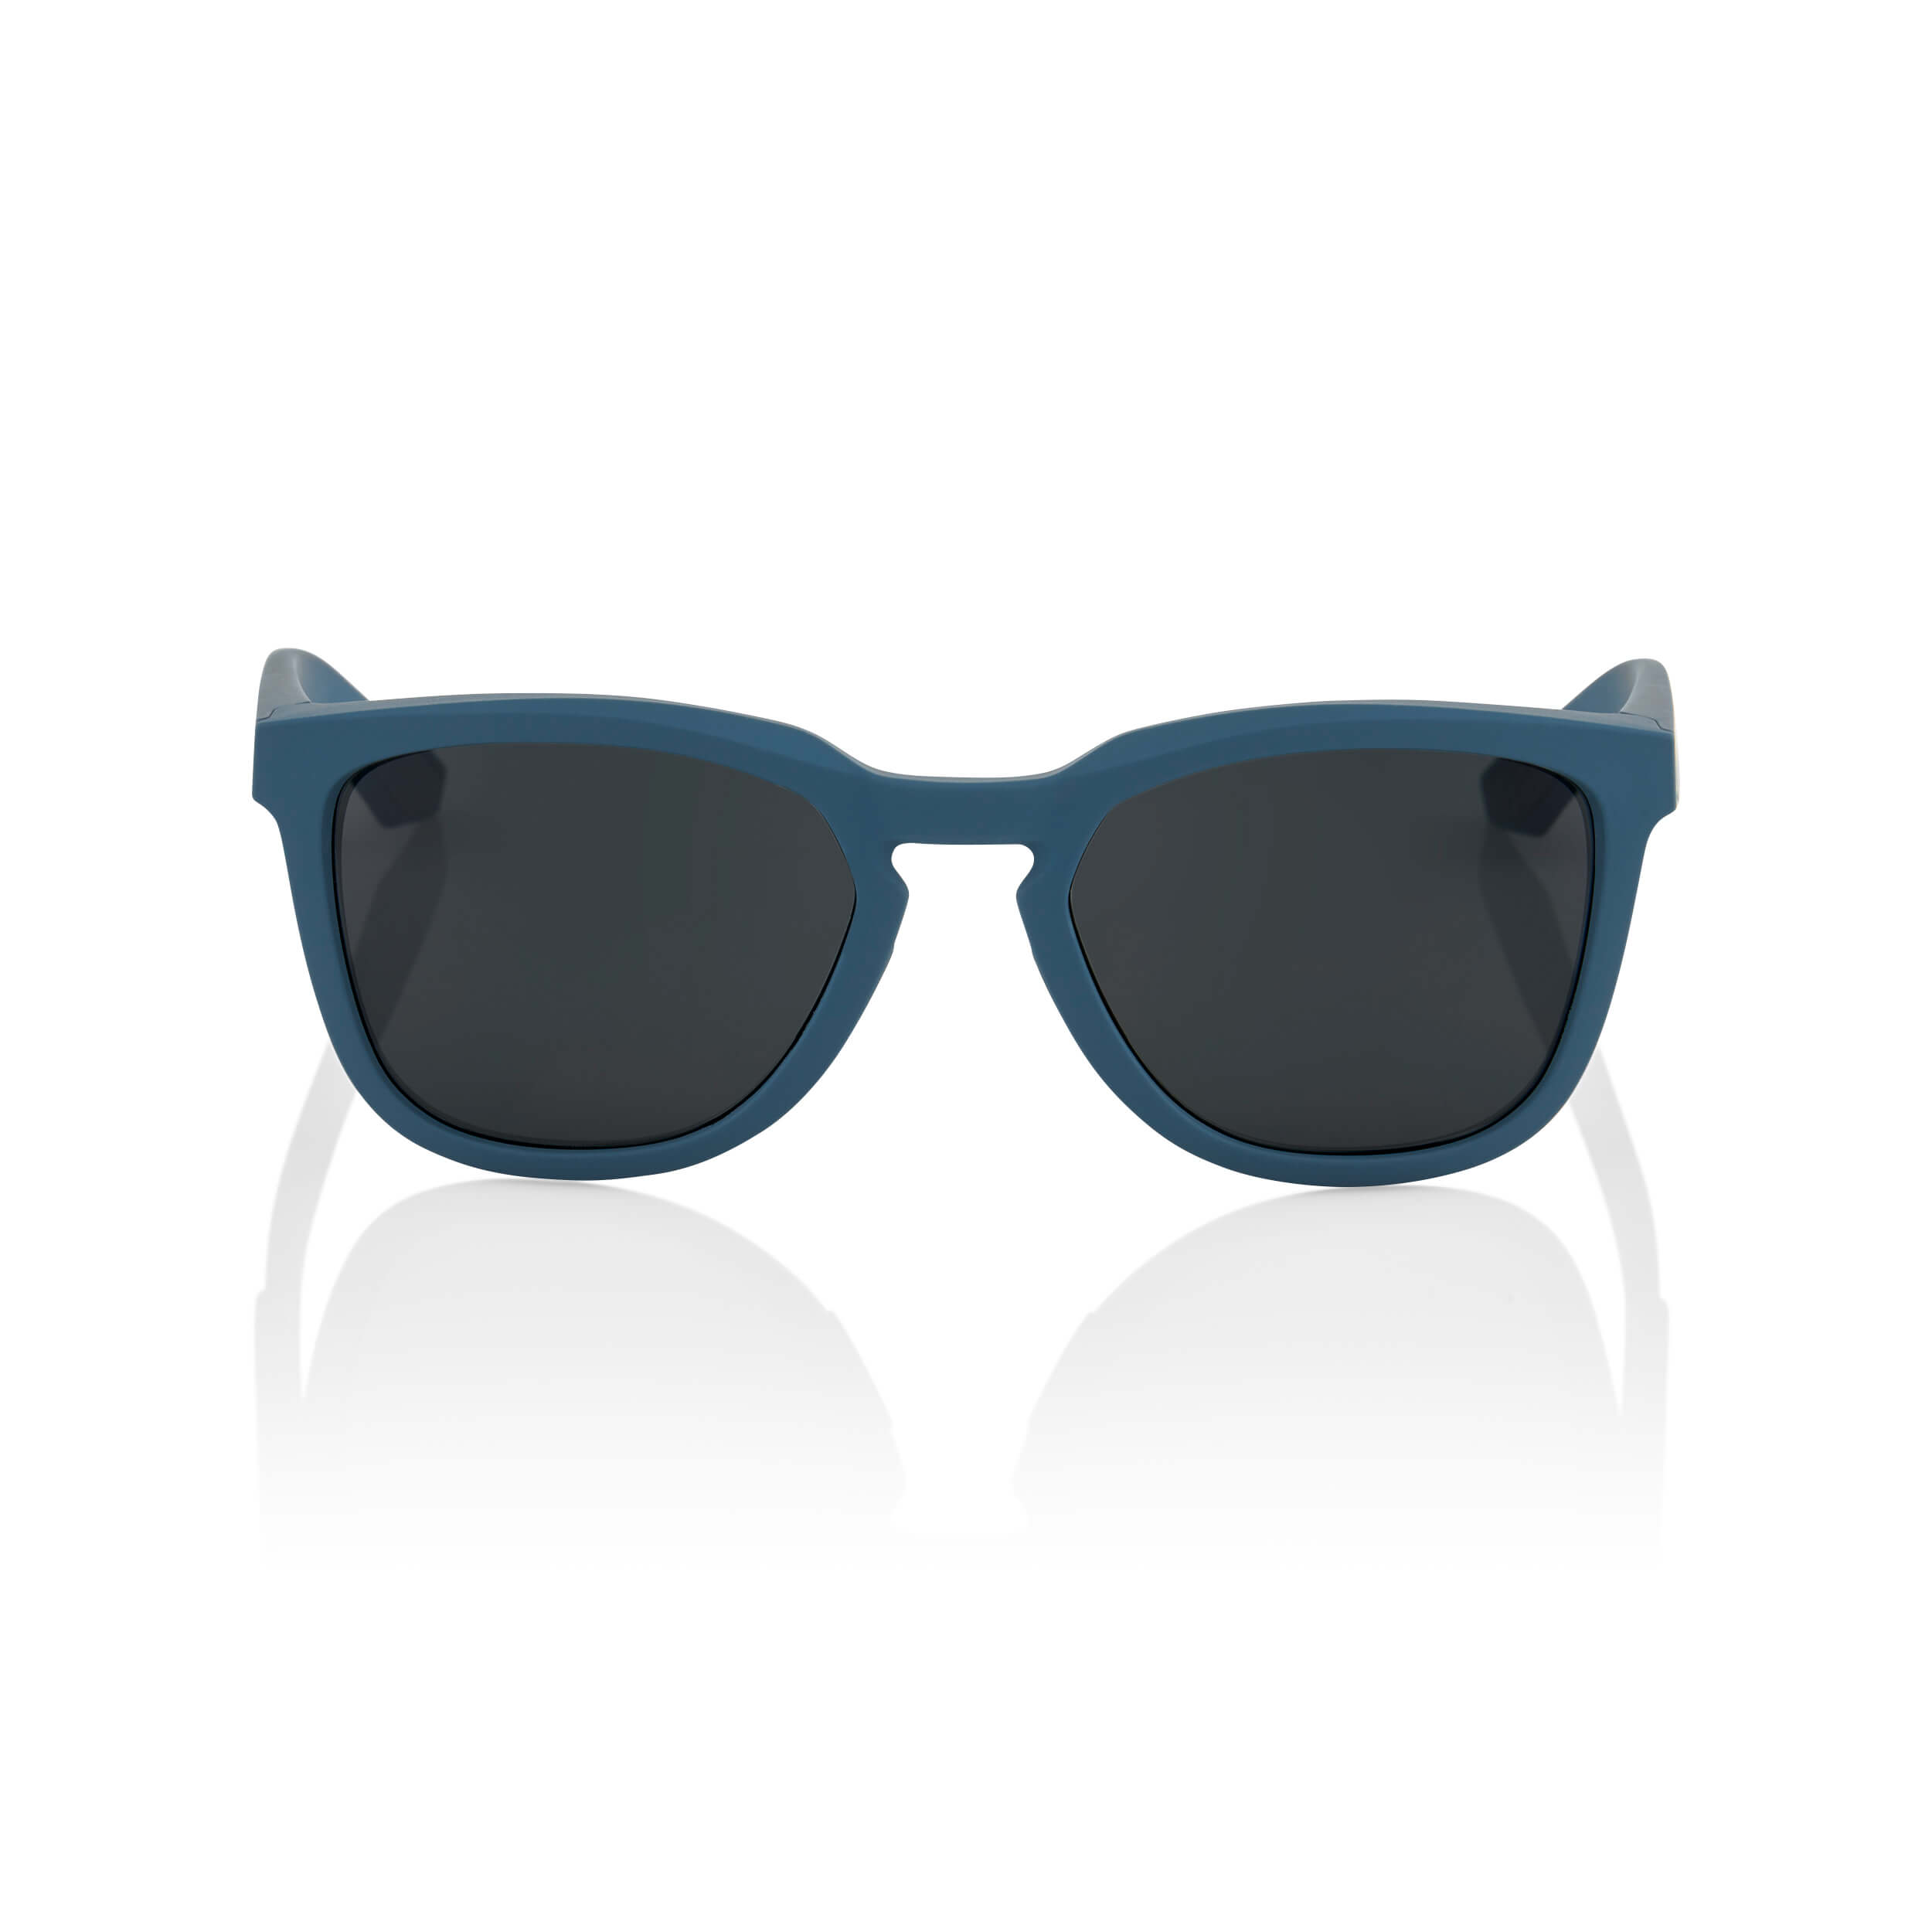 HUDSON – Soft Tact Blue – Smoke Lens